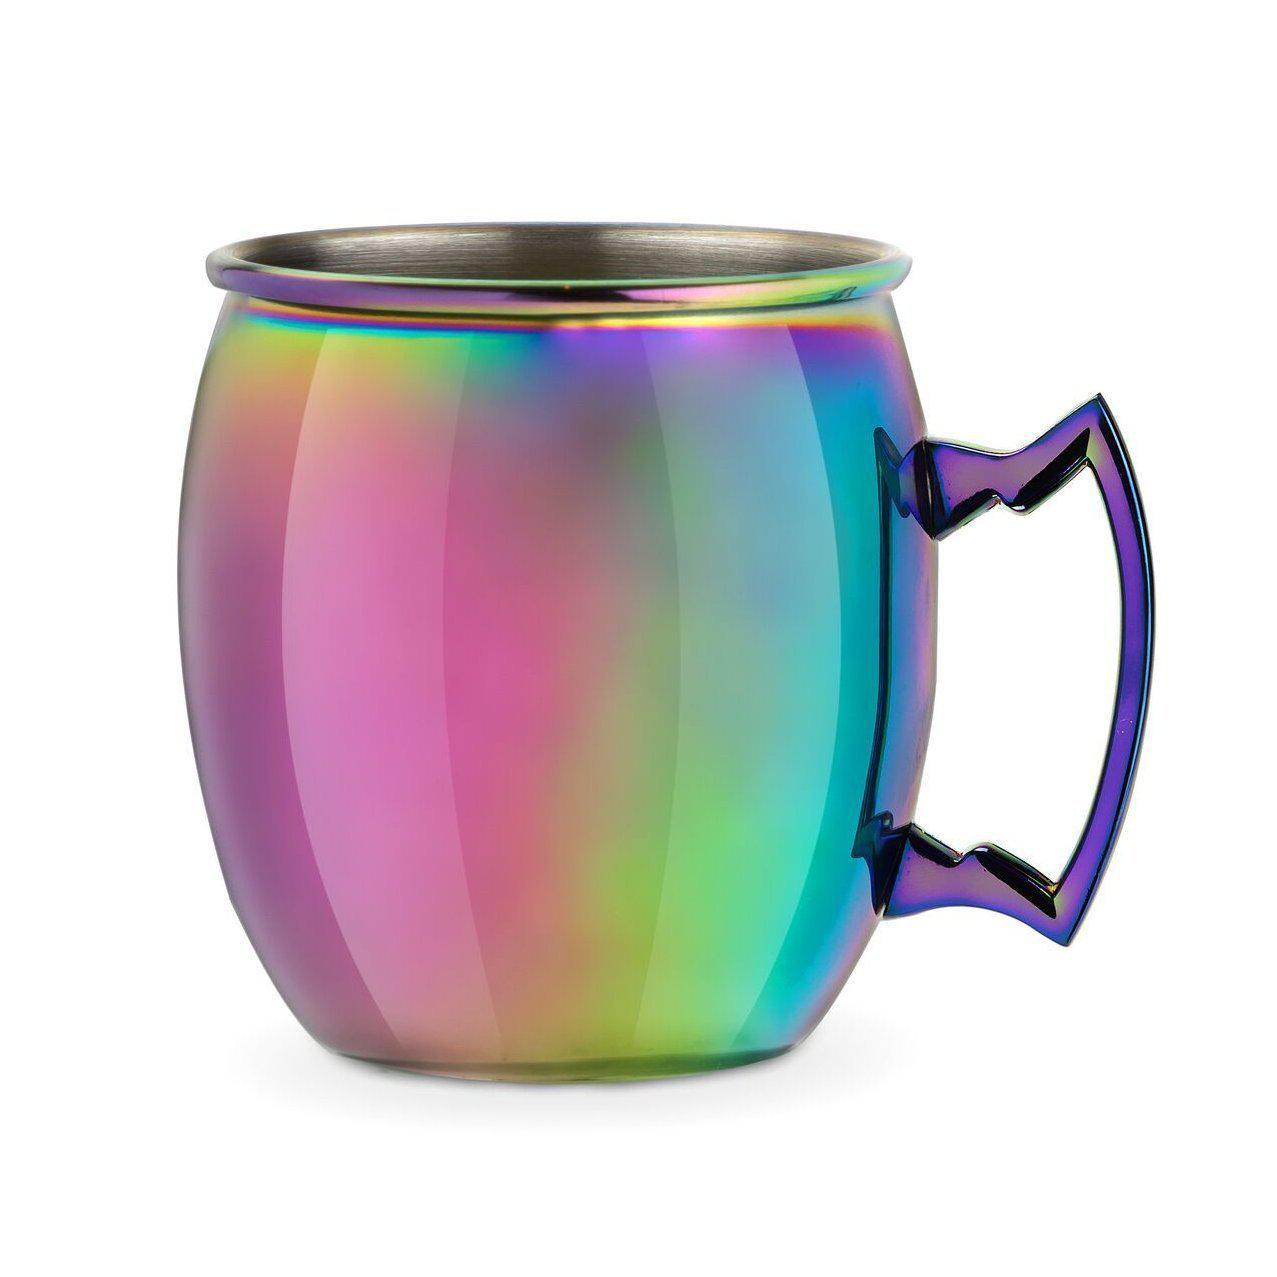 Mirage Iridescent Moscow Mule Mug-Home - Entertaining - Cocktail Glasses-BLUSH-Peccadilly